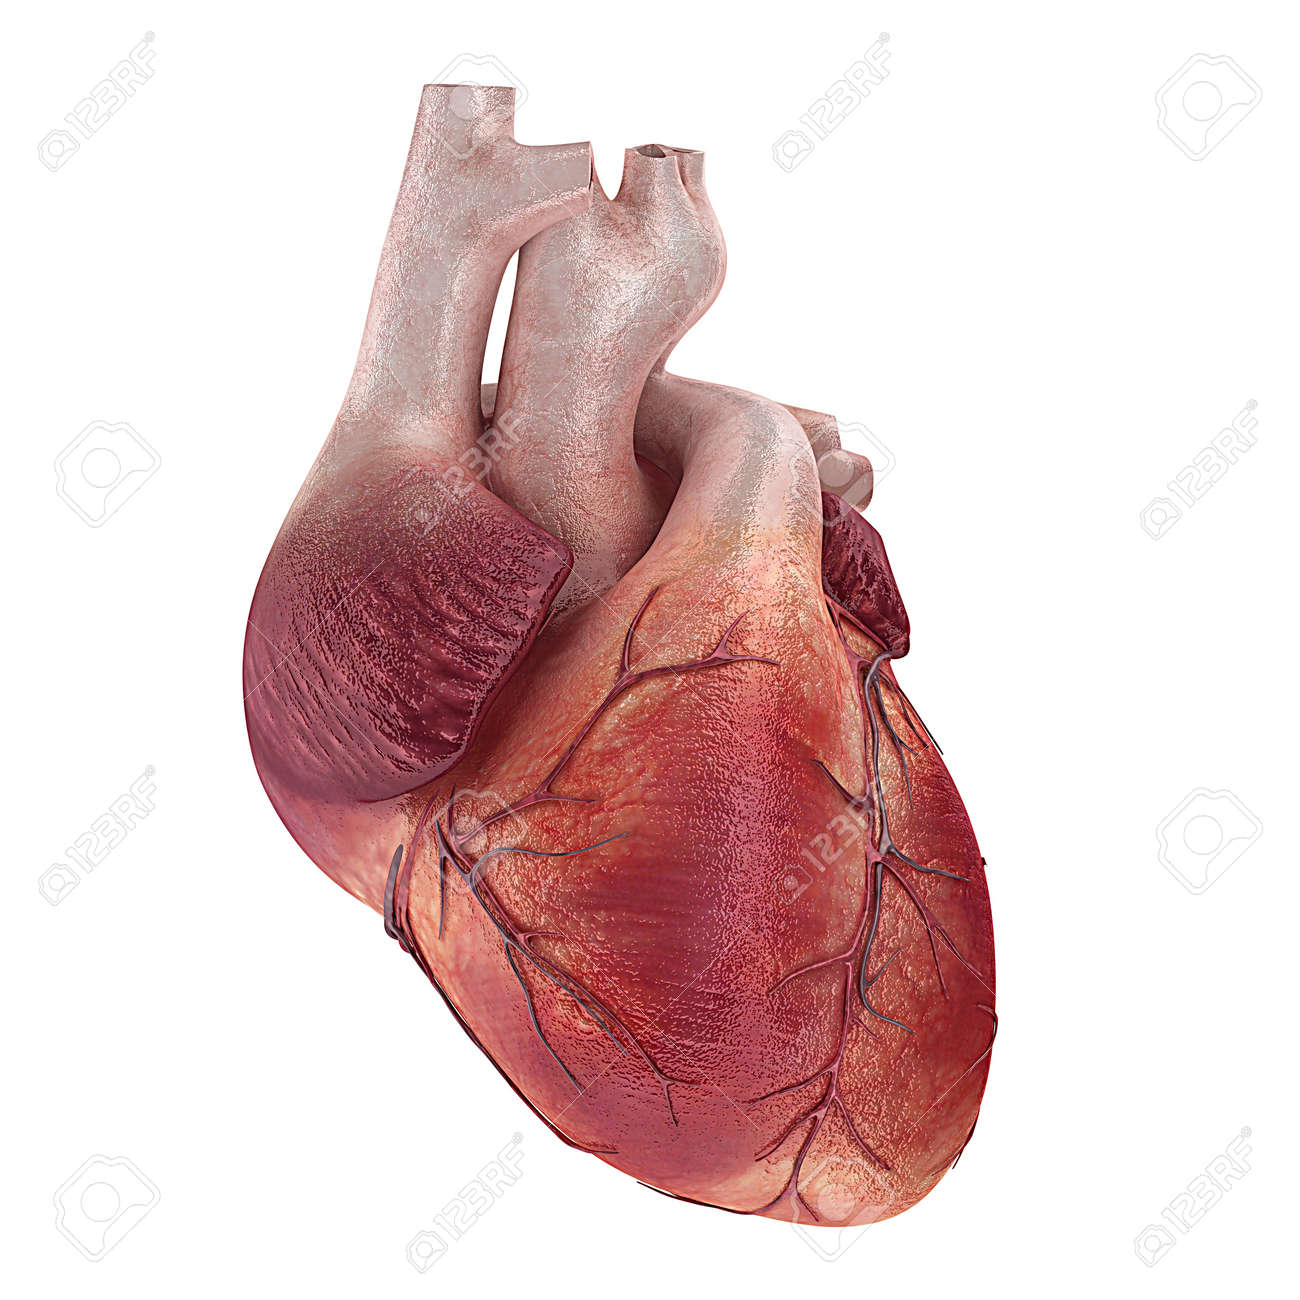 3d rendered medical illustration of a human heart stock photo, Muscles